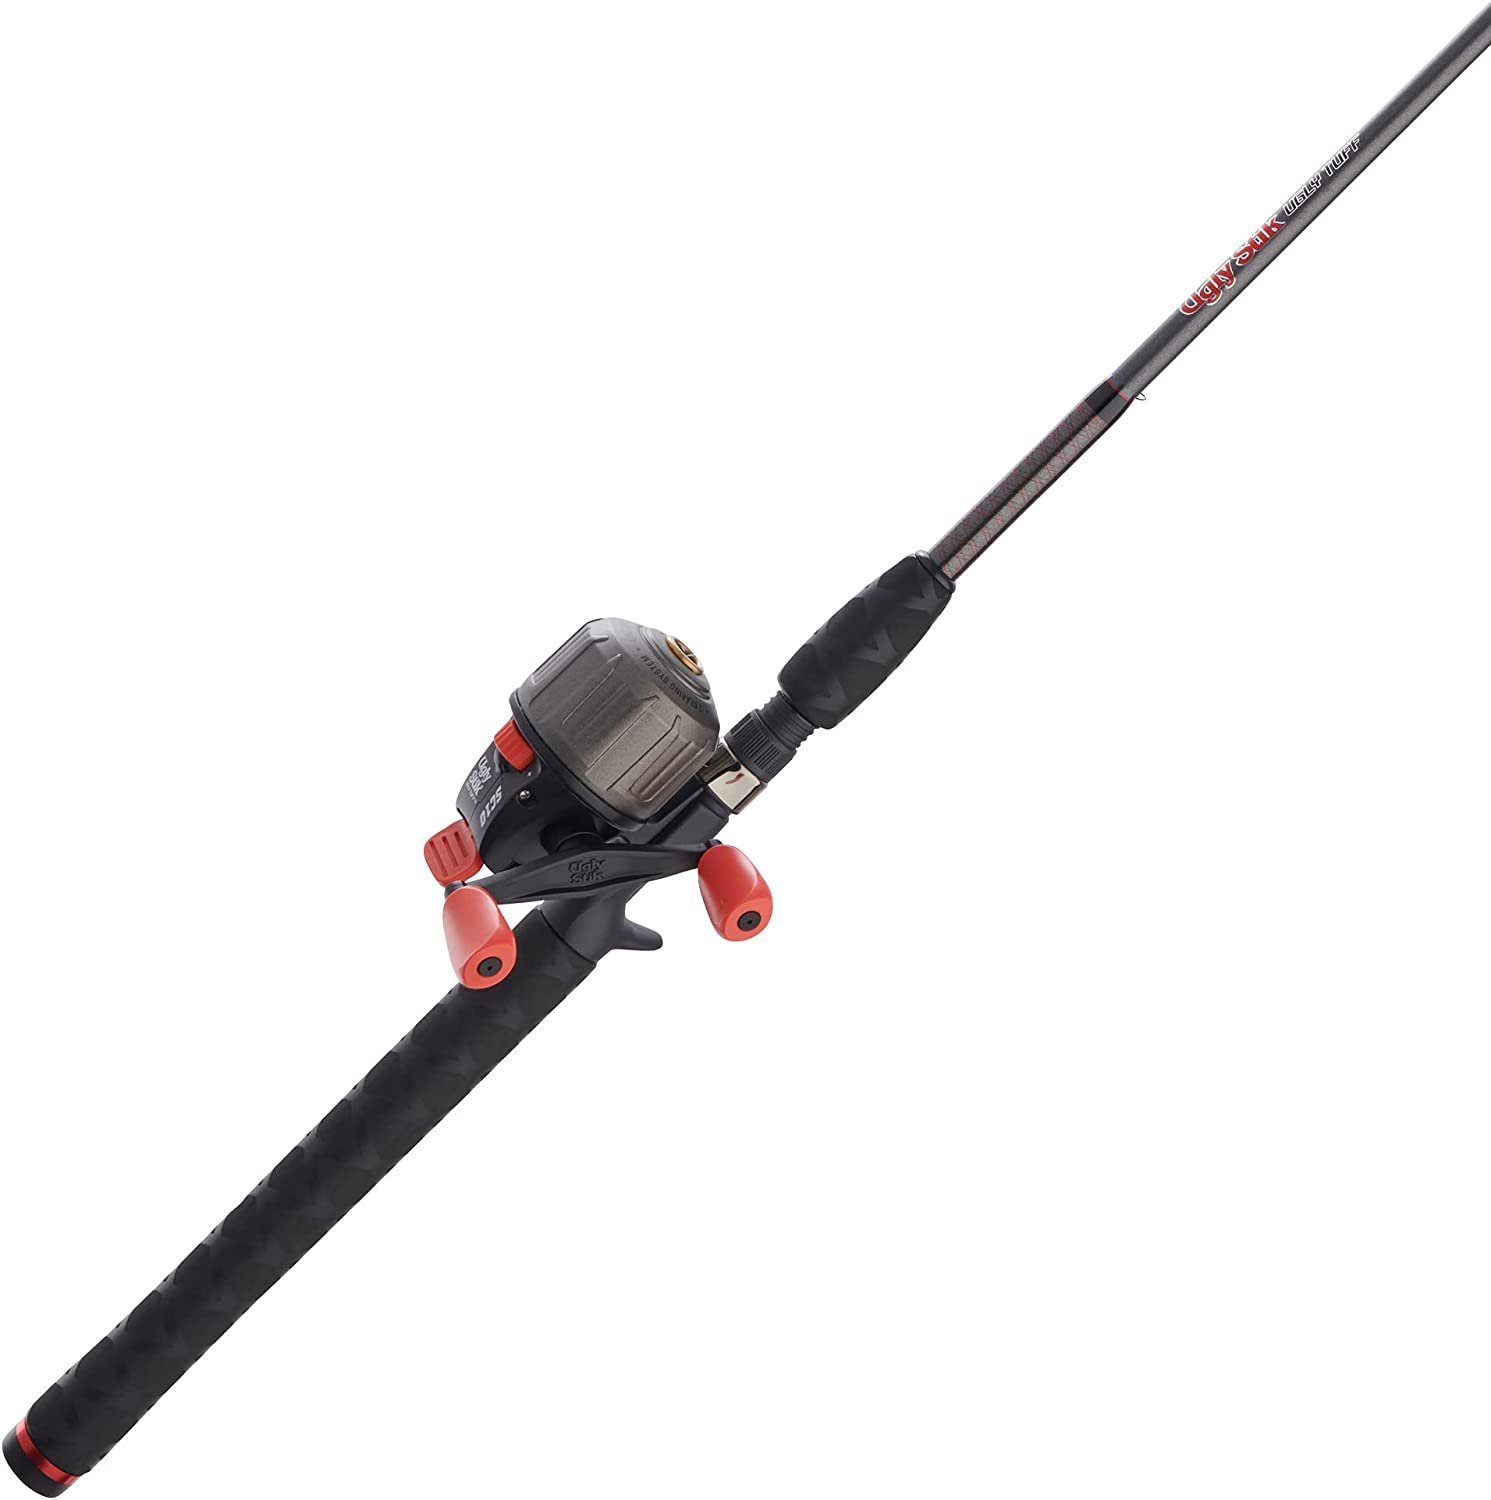 Ugly Stik Tuff New mail order Spincast Reel Fishing Rod Combo Super special price and